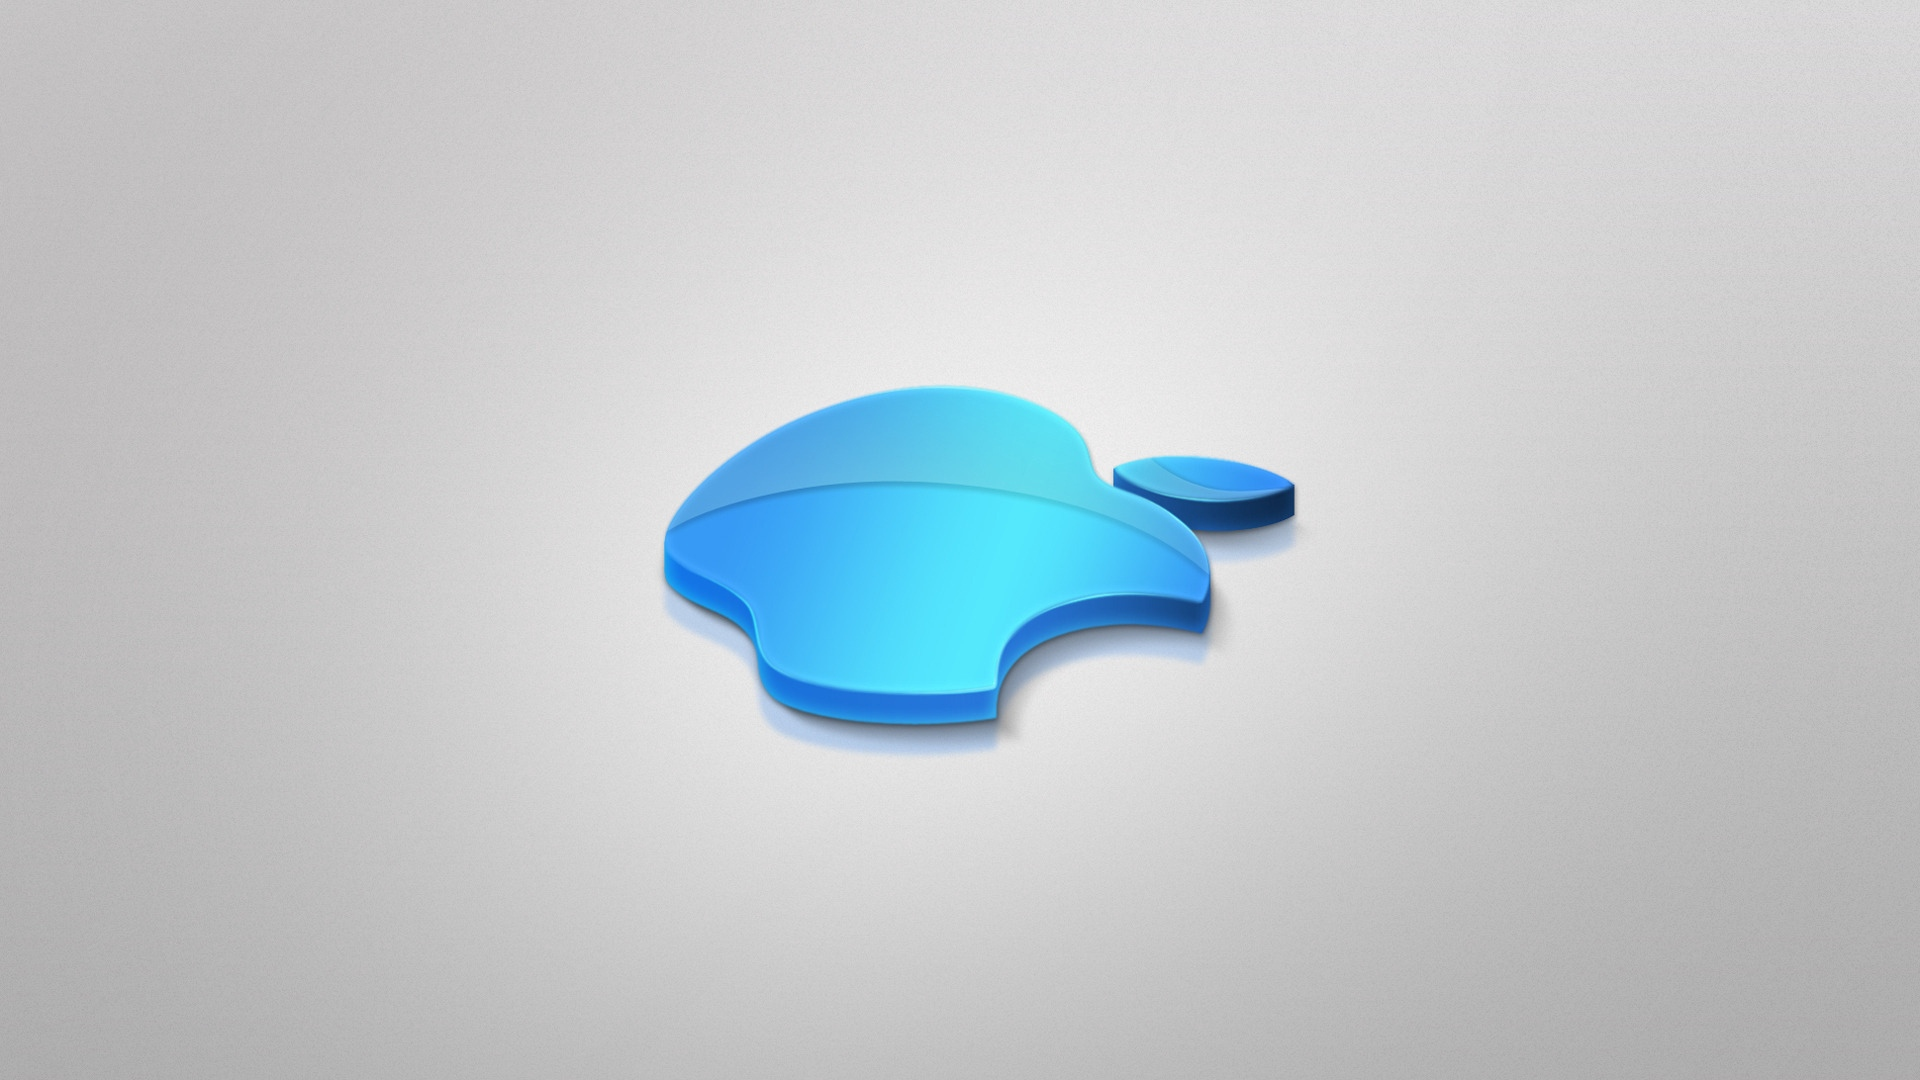 hd wallpapers for mac,blue,turquoise,design,logo,plastic